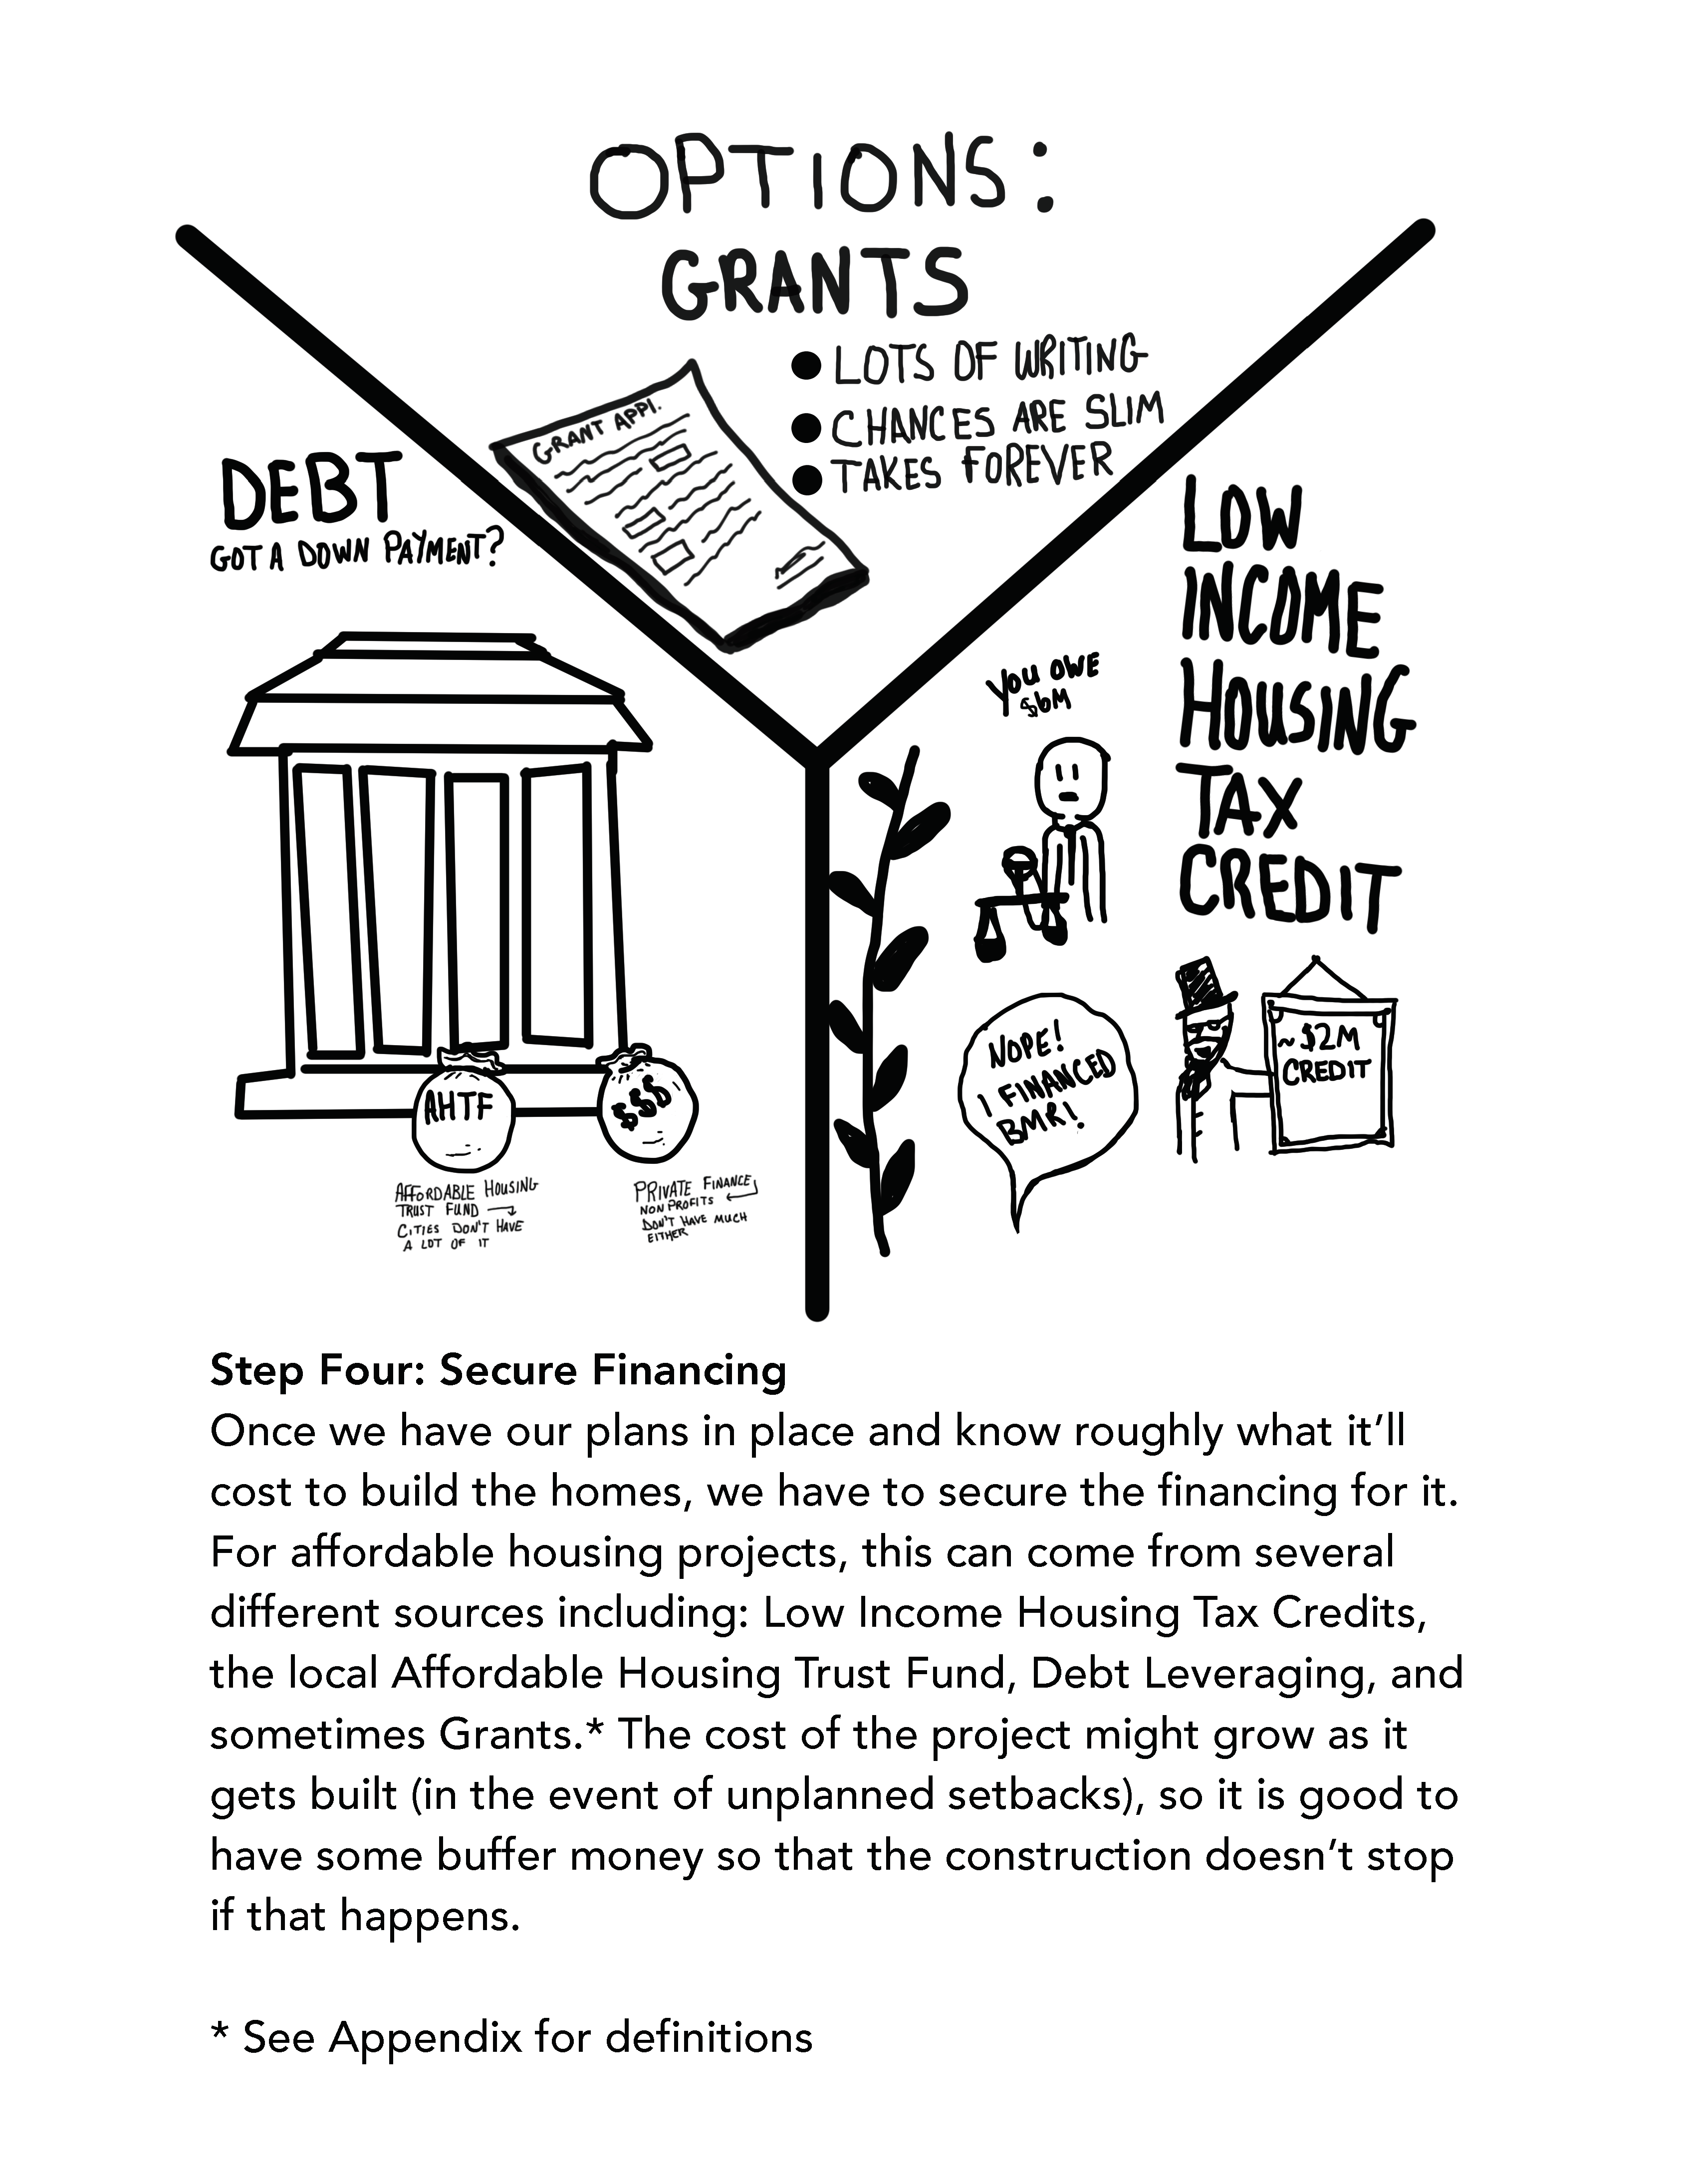 Step Four: Secure Financing Once we have our plans in place and know roughly what it'll cost to build the homes, we have to secure the financing for it. For affordable housing projects, this can come from several different sources including: Low Income Housing Tax Credits, the local Affordable Housing Trust Fund, Debt Leveraging, and sometimes Grants.* The cost of the project might grow as it gets built (in the event of unplanned setbacks), so it is good to have some buffer money so that the construction doesn't stop if that happens. * See Appendix for definitions